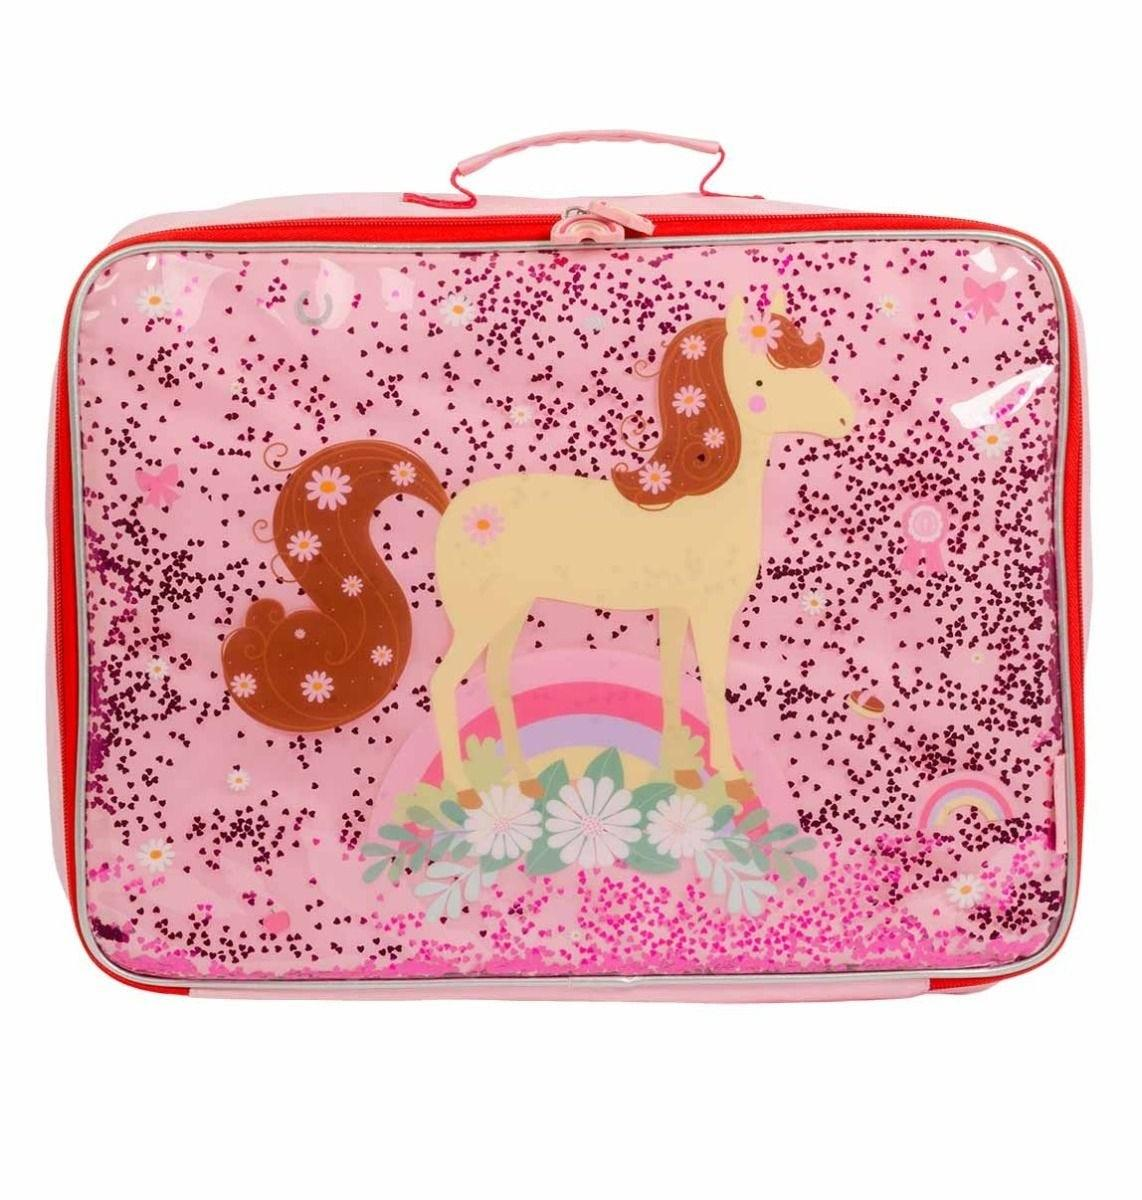 A Little Lovely Company - Suitcase: Glitter - horse